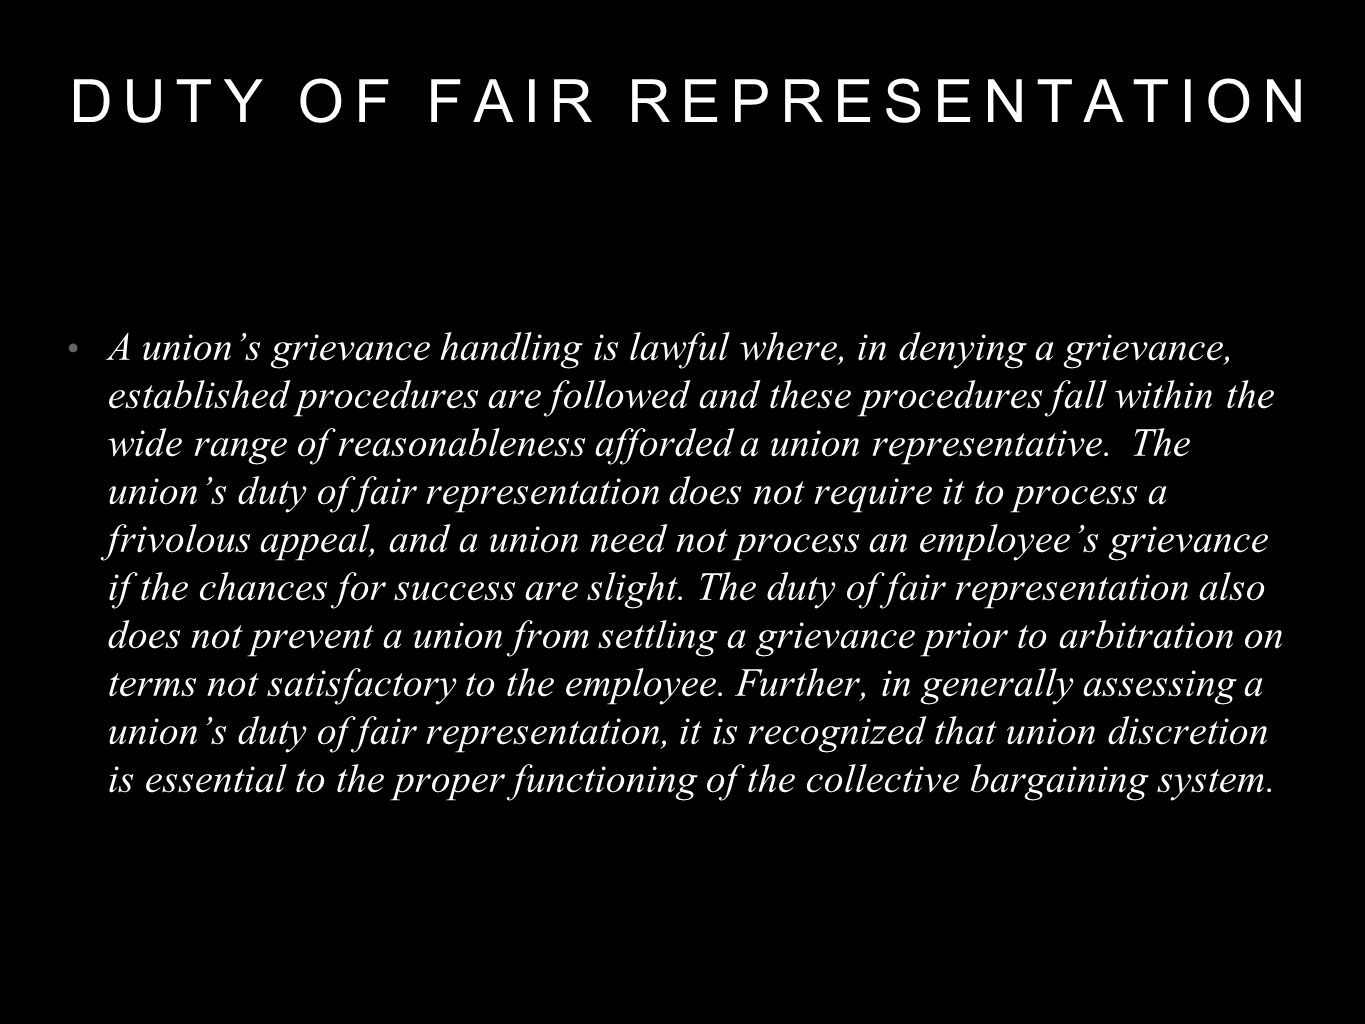 DUTY OF FAIR REPRESENTATION A union's grievance handling is lawful where, in denying a grievance, established procedures are followed and these procedures fall within the wide range of reasonableness afforded a union representative.